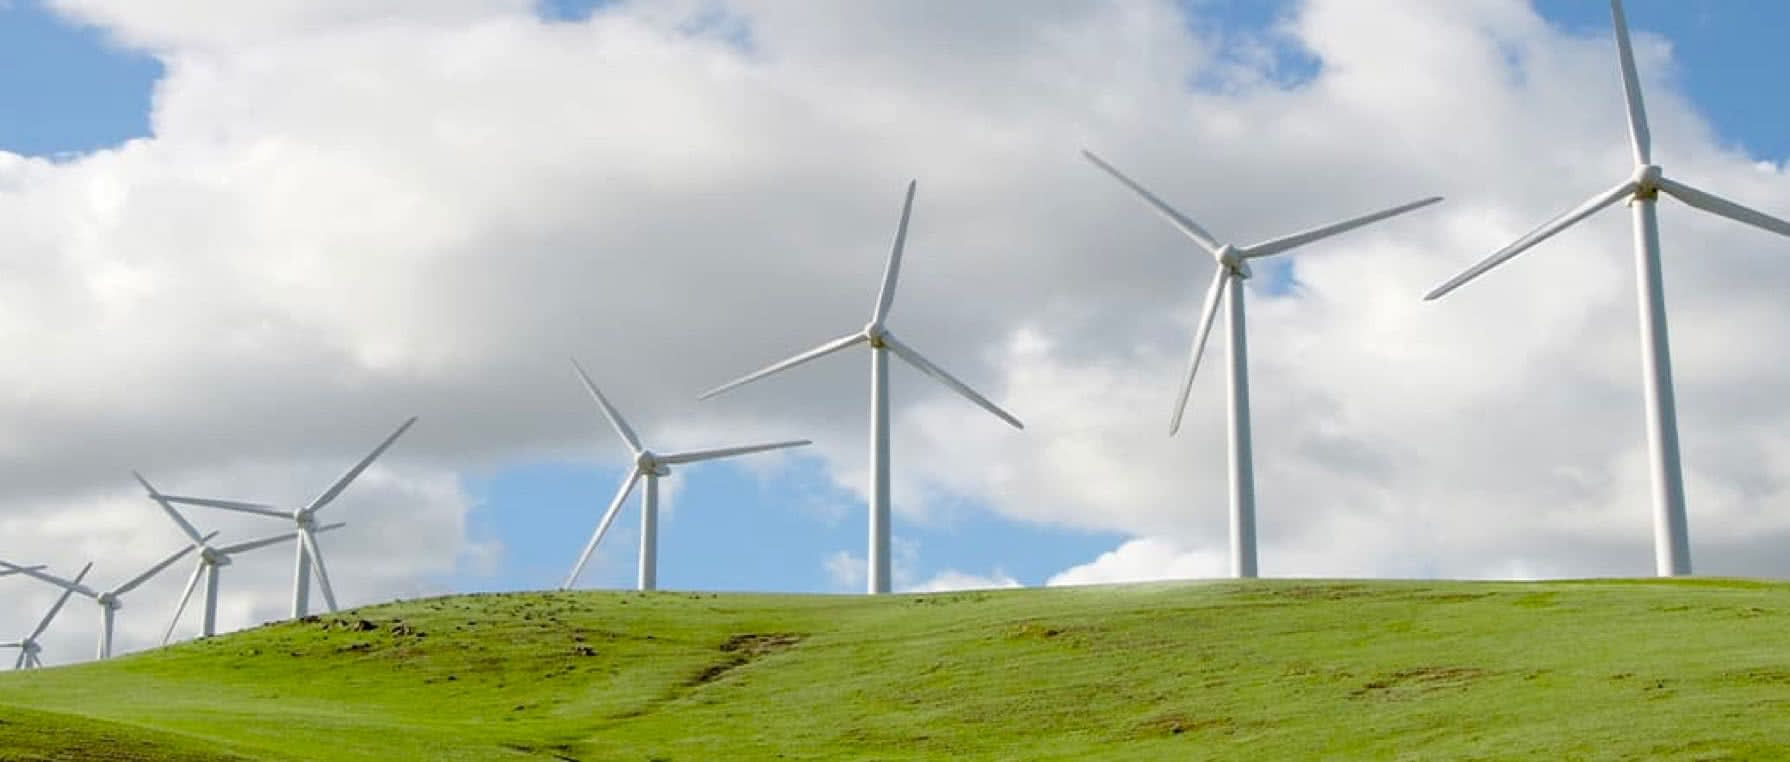 Wind Turbines spinning over a green field and a blue sky, generating power for the east bay.